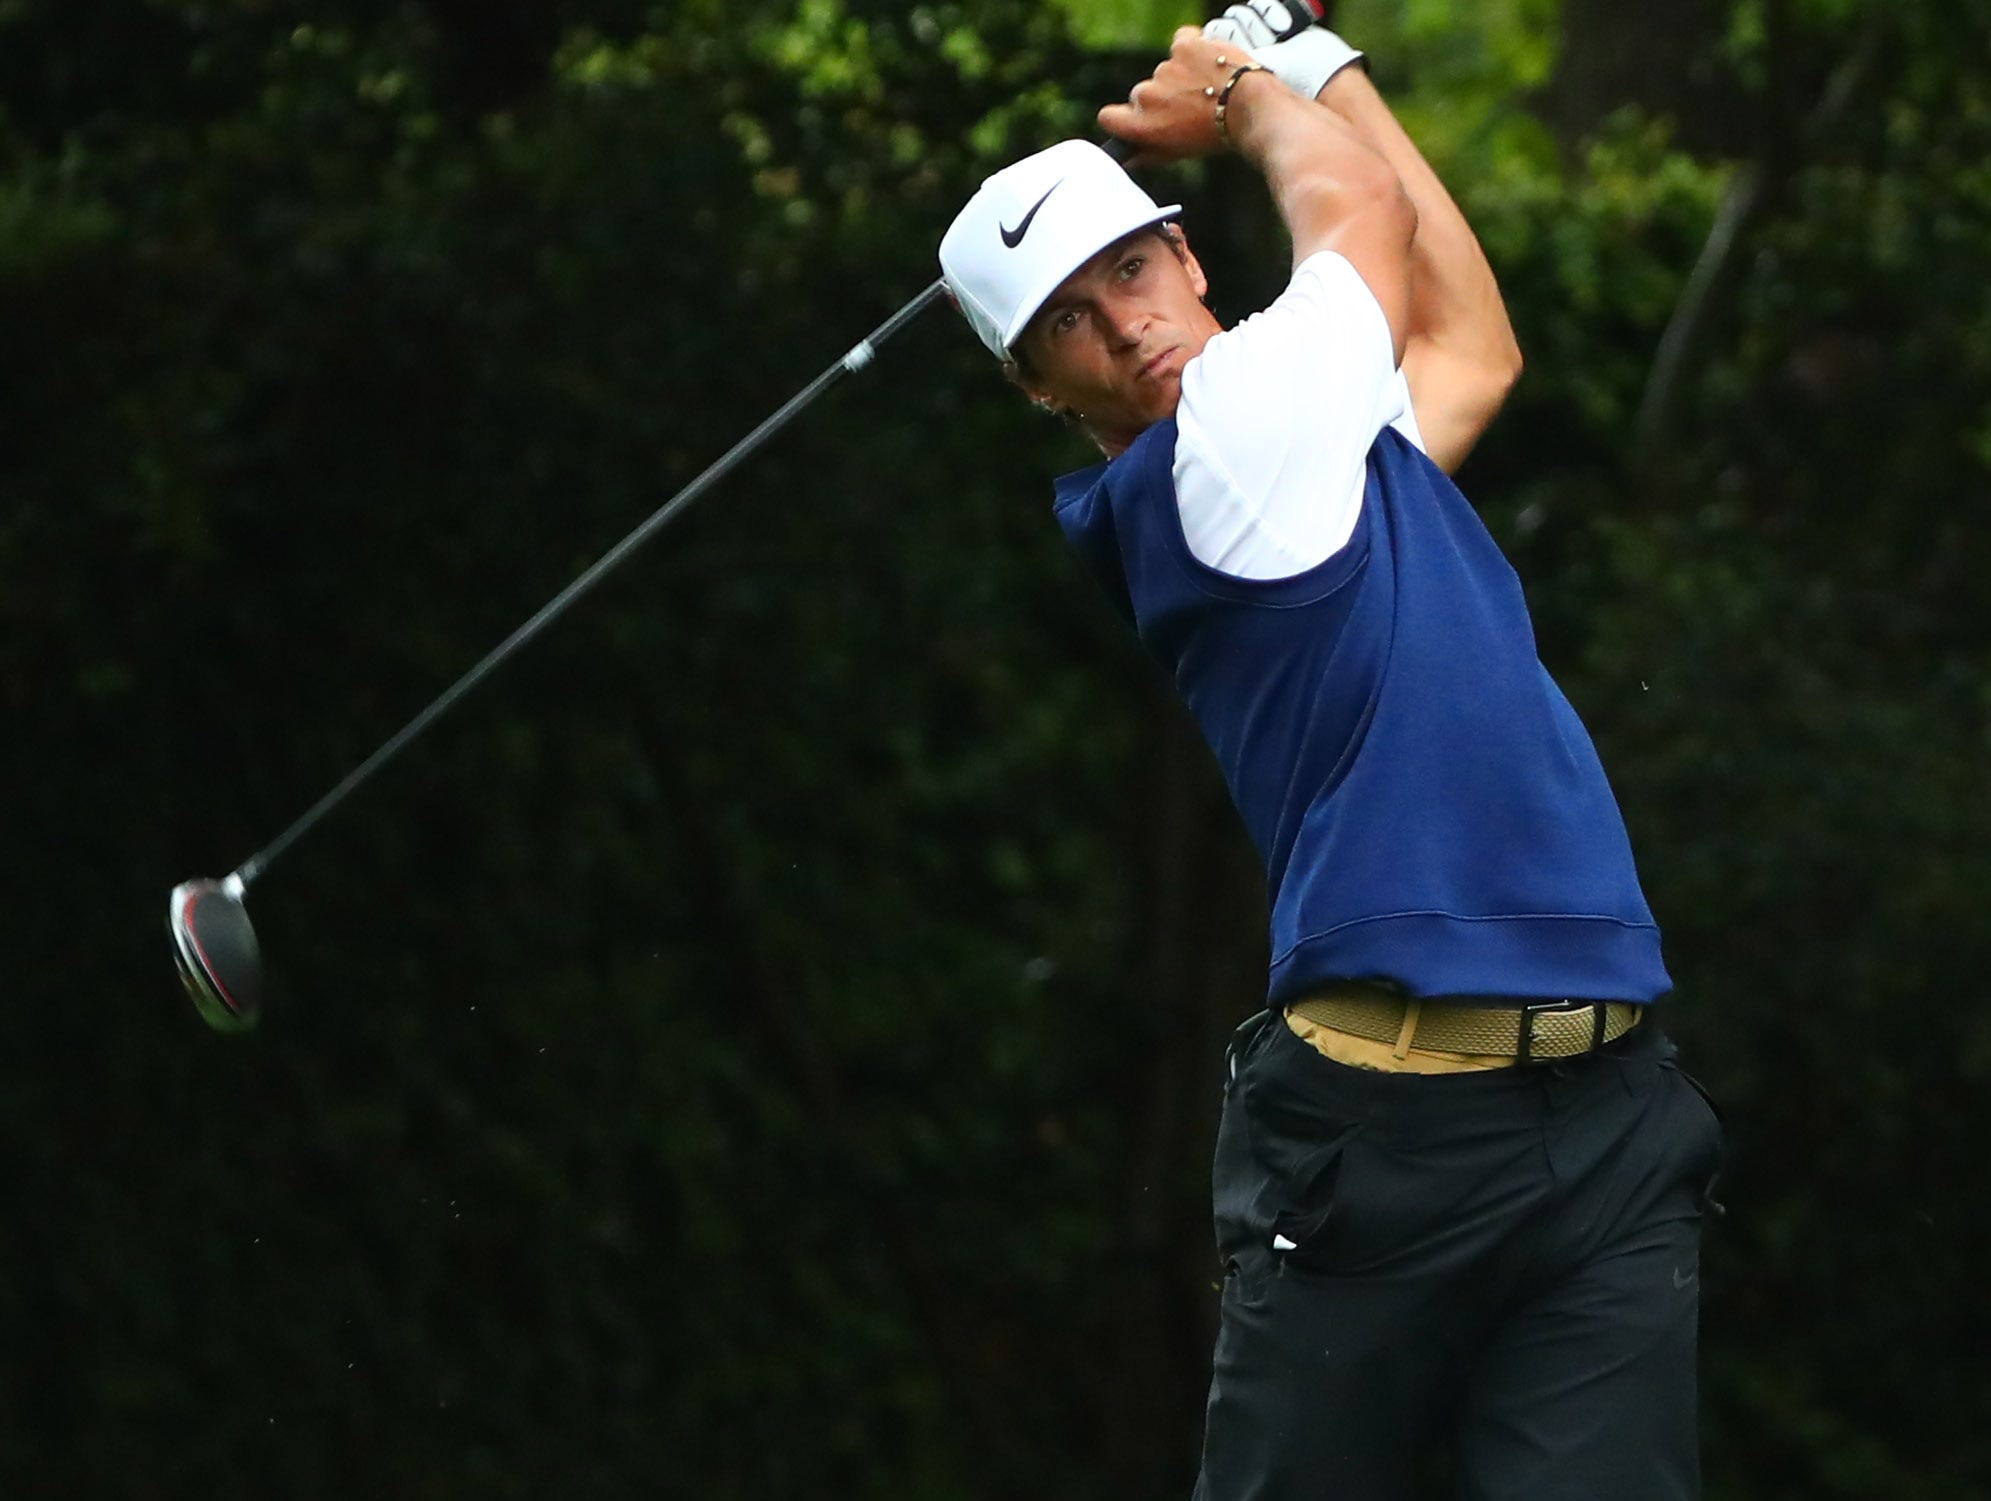 Apr 12, 2019; Augusta, GA, USA; Thorbjorn Olesen hits his tee shot on the 2nd hole during the second round of The Masters golf tournament at Augusta National Golf Club. Mandatory Credit: Rob Schumacher-USA TODAY Sports